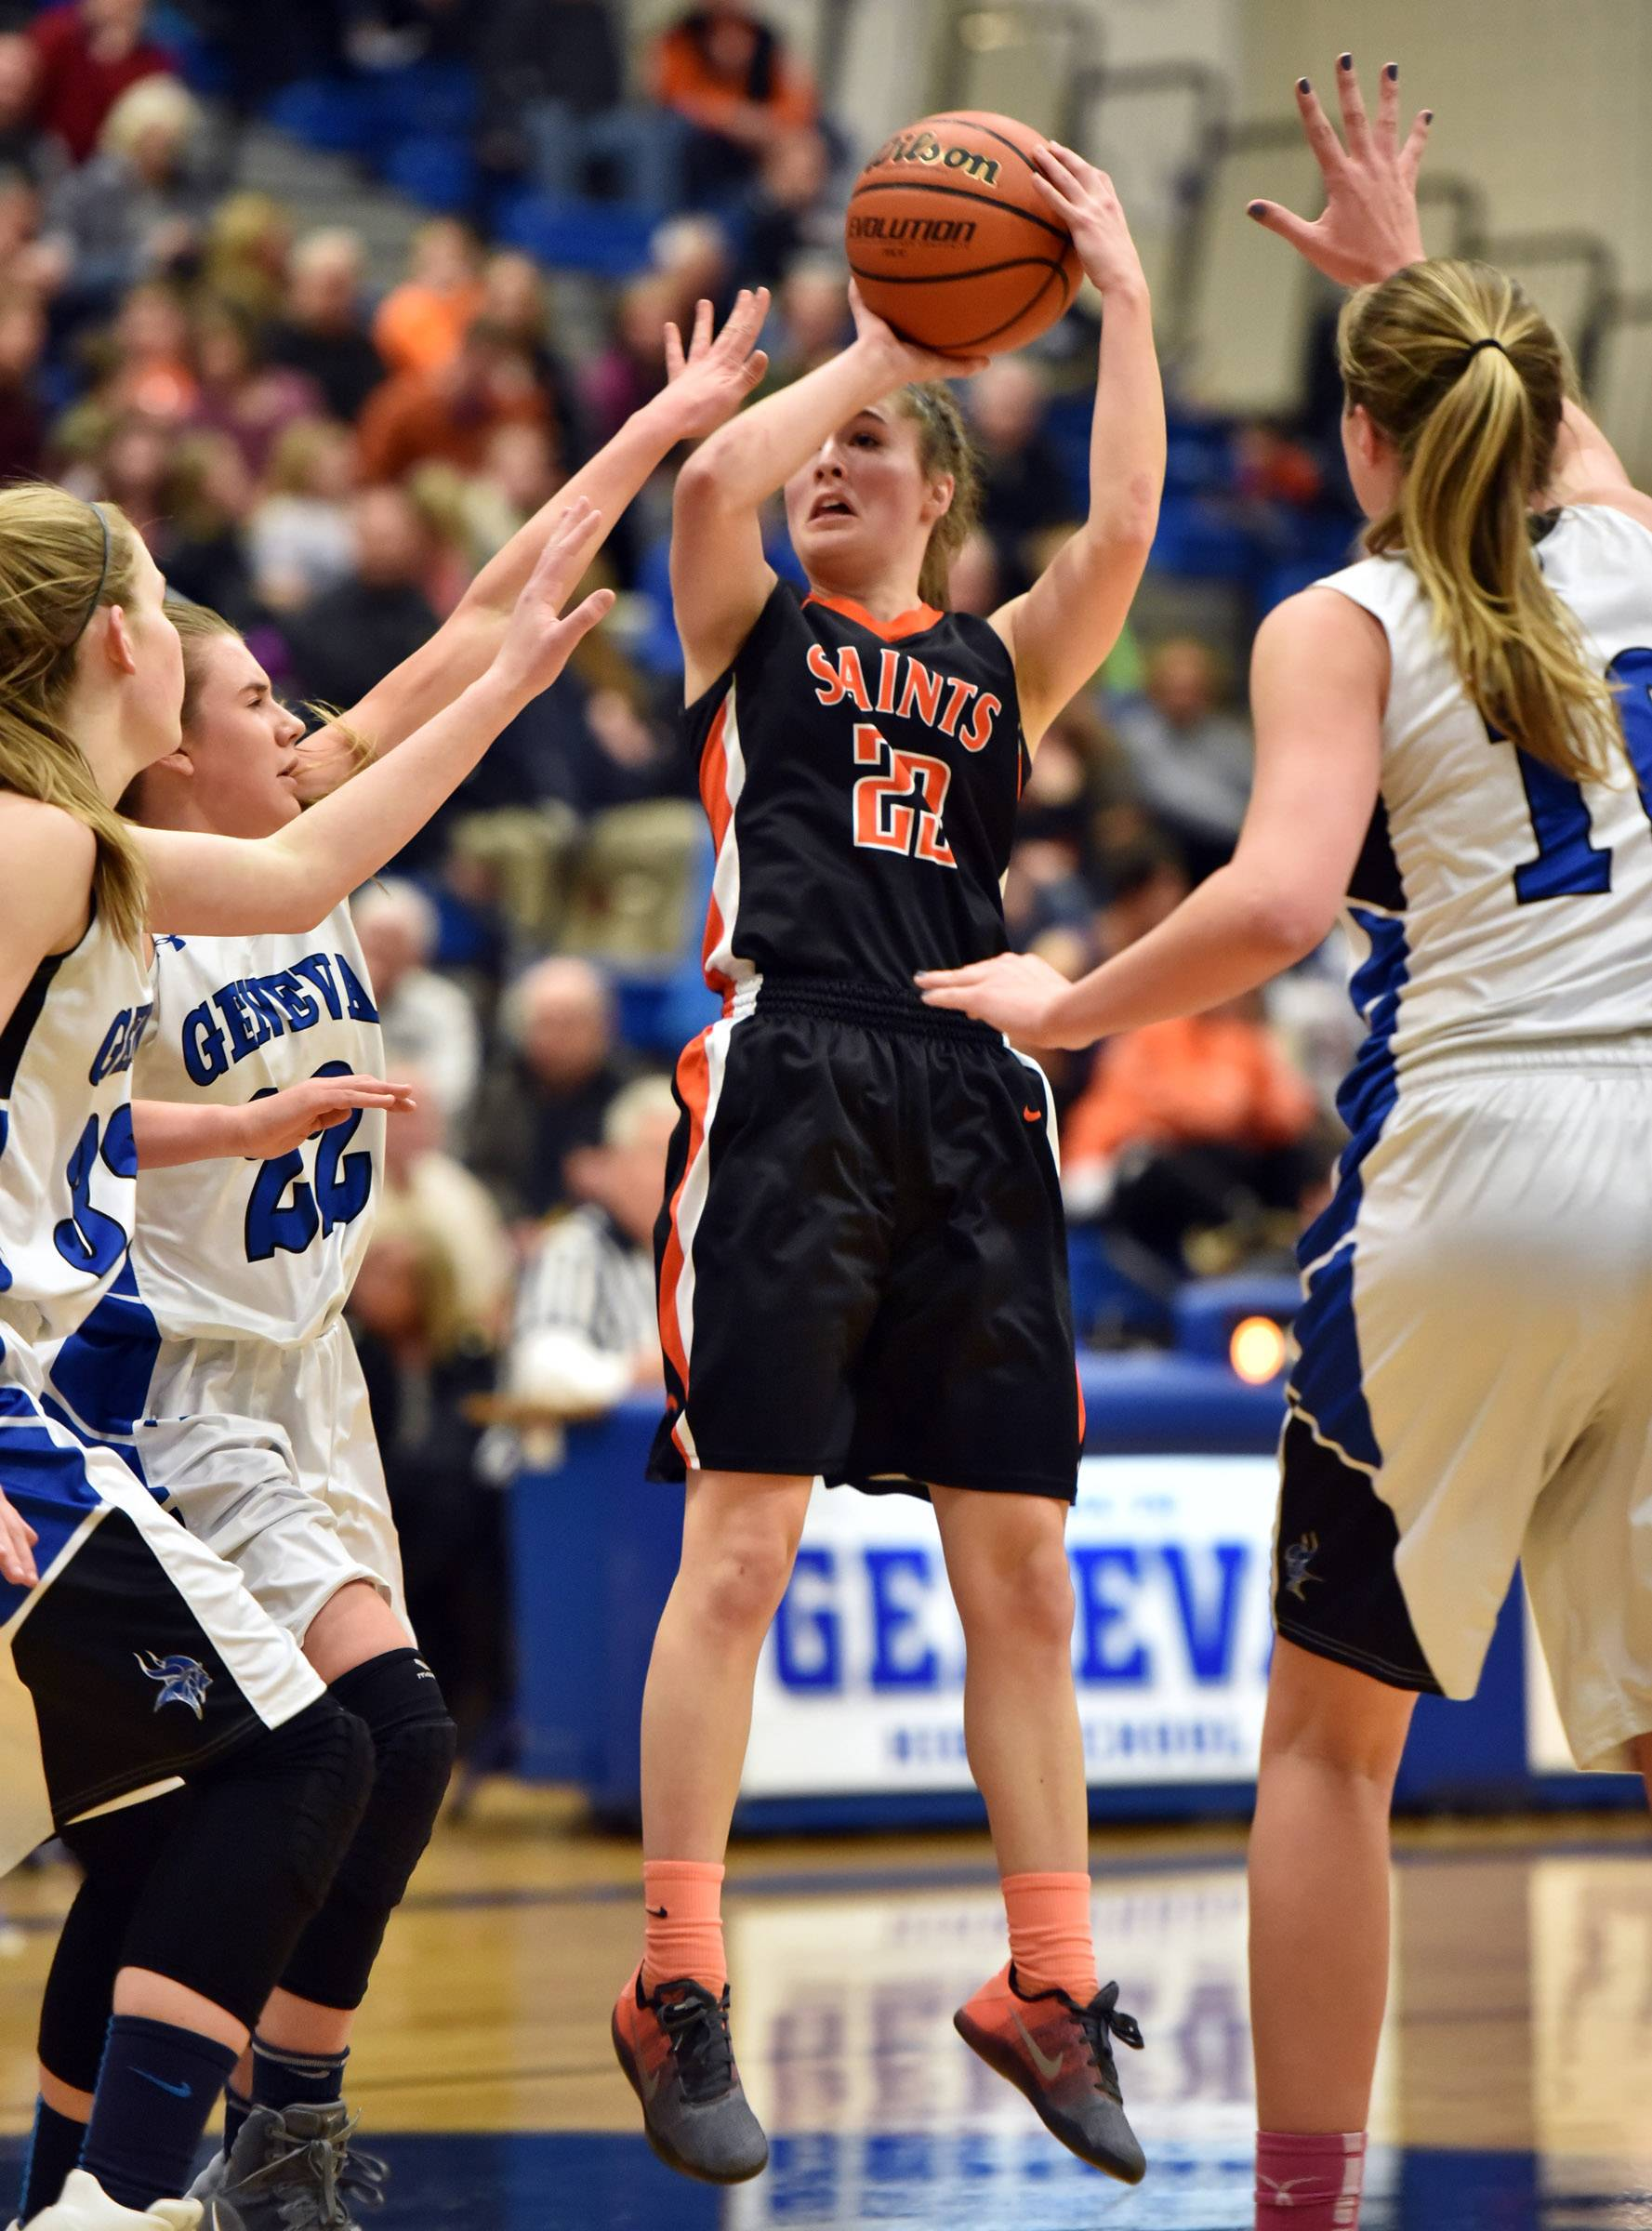 St. Charles East's Samantha Munroe shoots in a crowd of Geneva players Friday in Geneva.